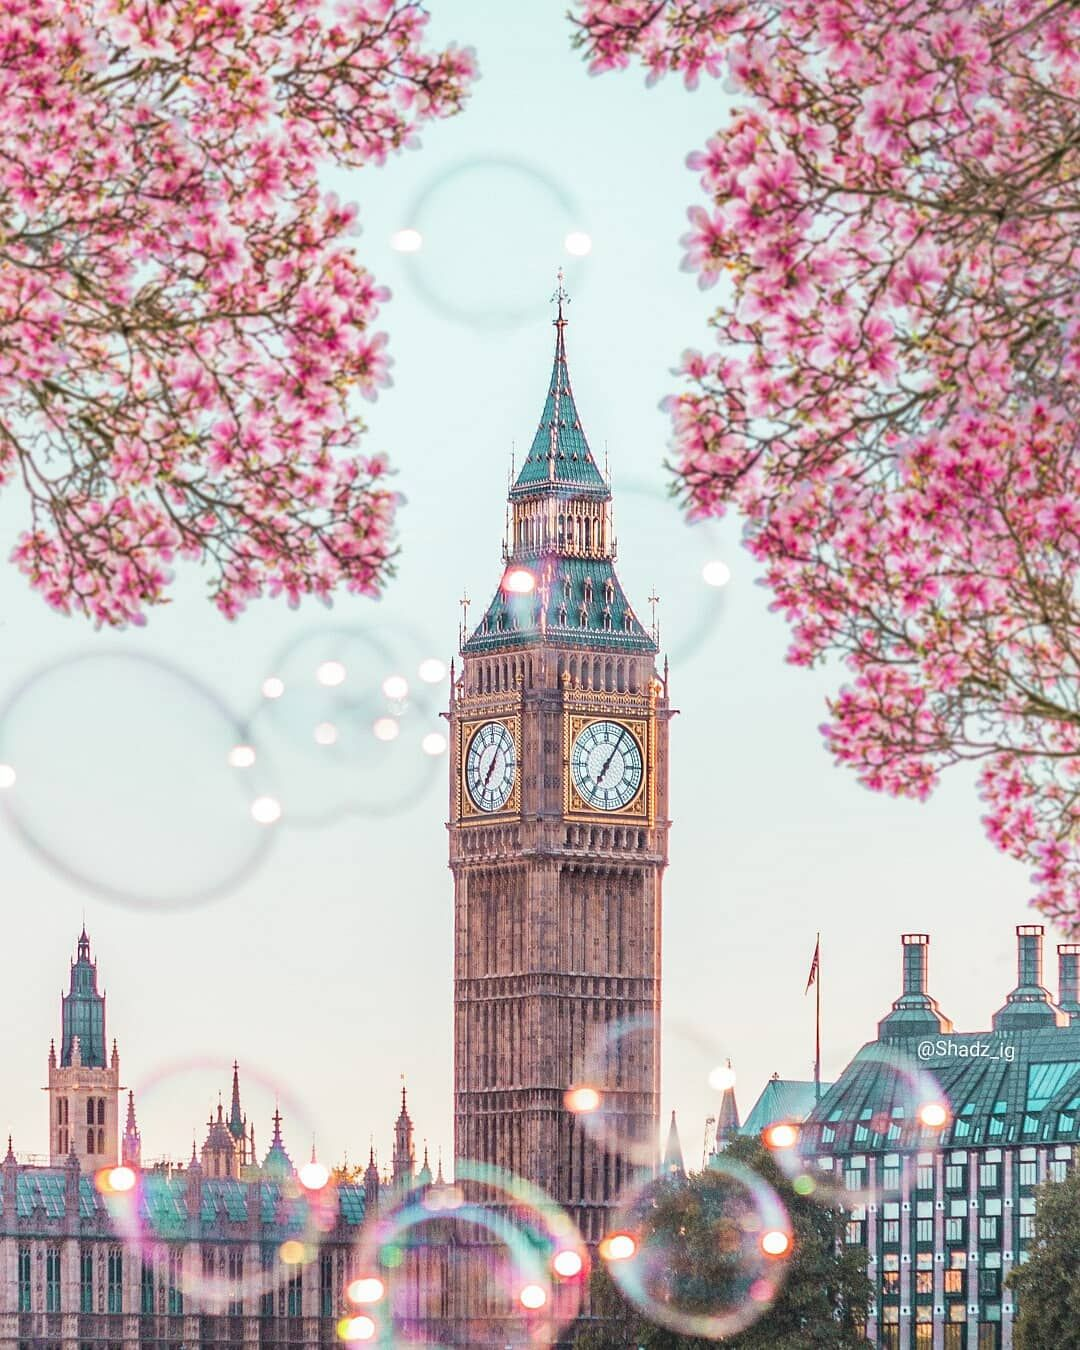 London In Spring Big Ben In Spring Cheery Blossom London London In Pink Photo By Shadzii Shadz Ig Inst Big Ben London London Photos London Wallpaper Aesthetic wallpaper city london